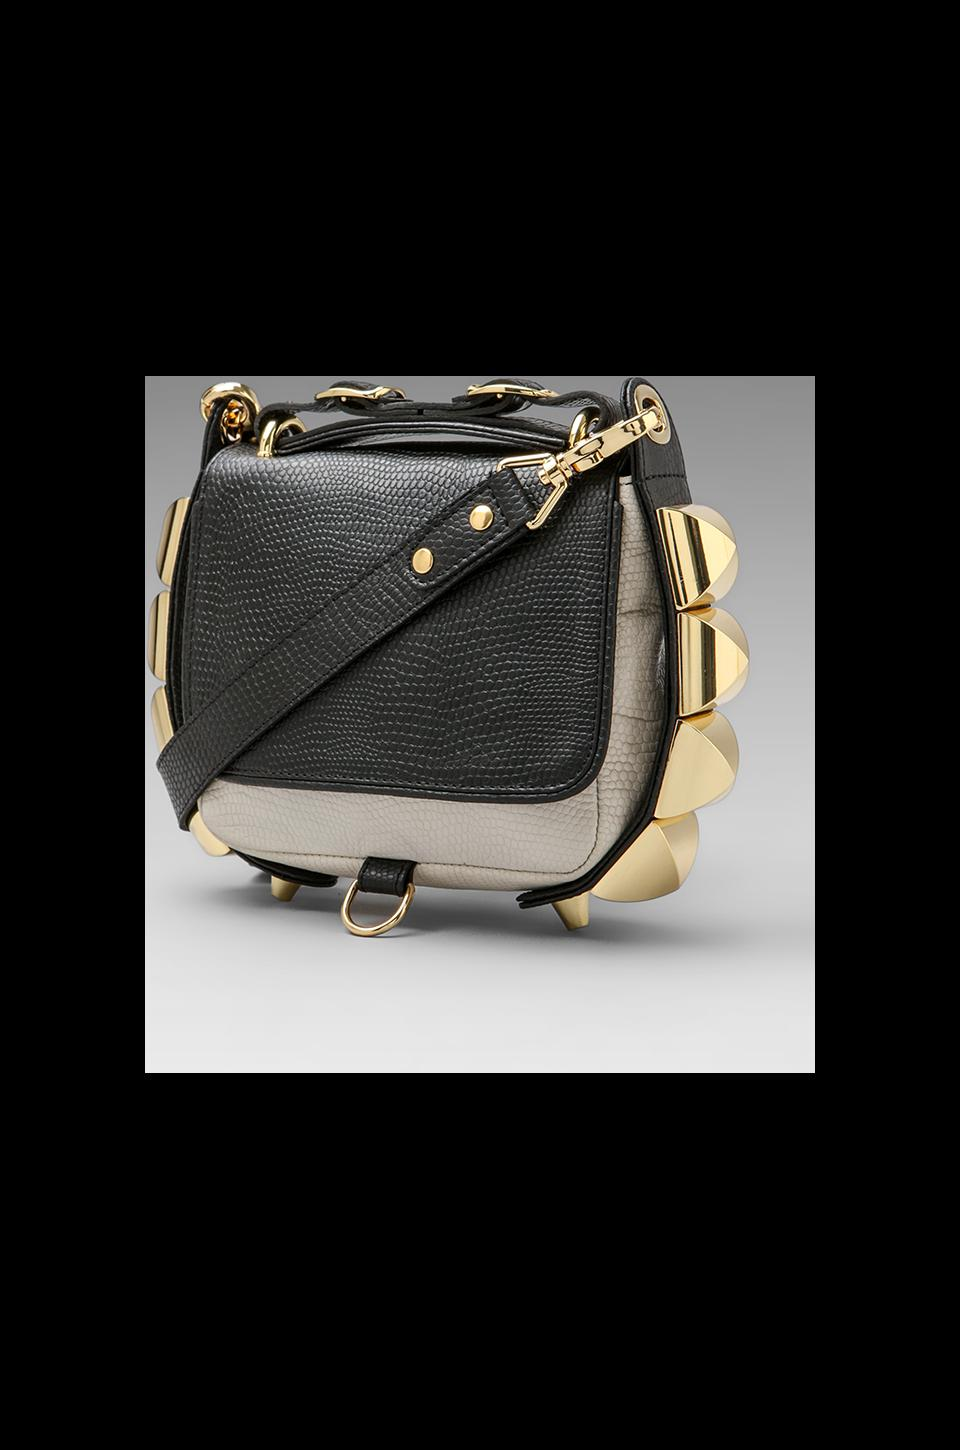 CC Skye The Studded Eden Two Tone Python Crossbody in Black/White